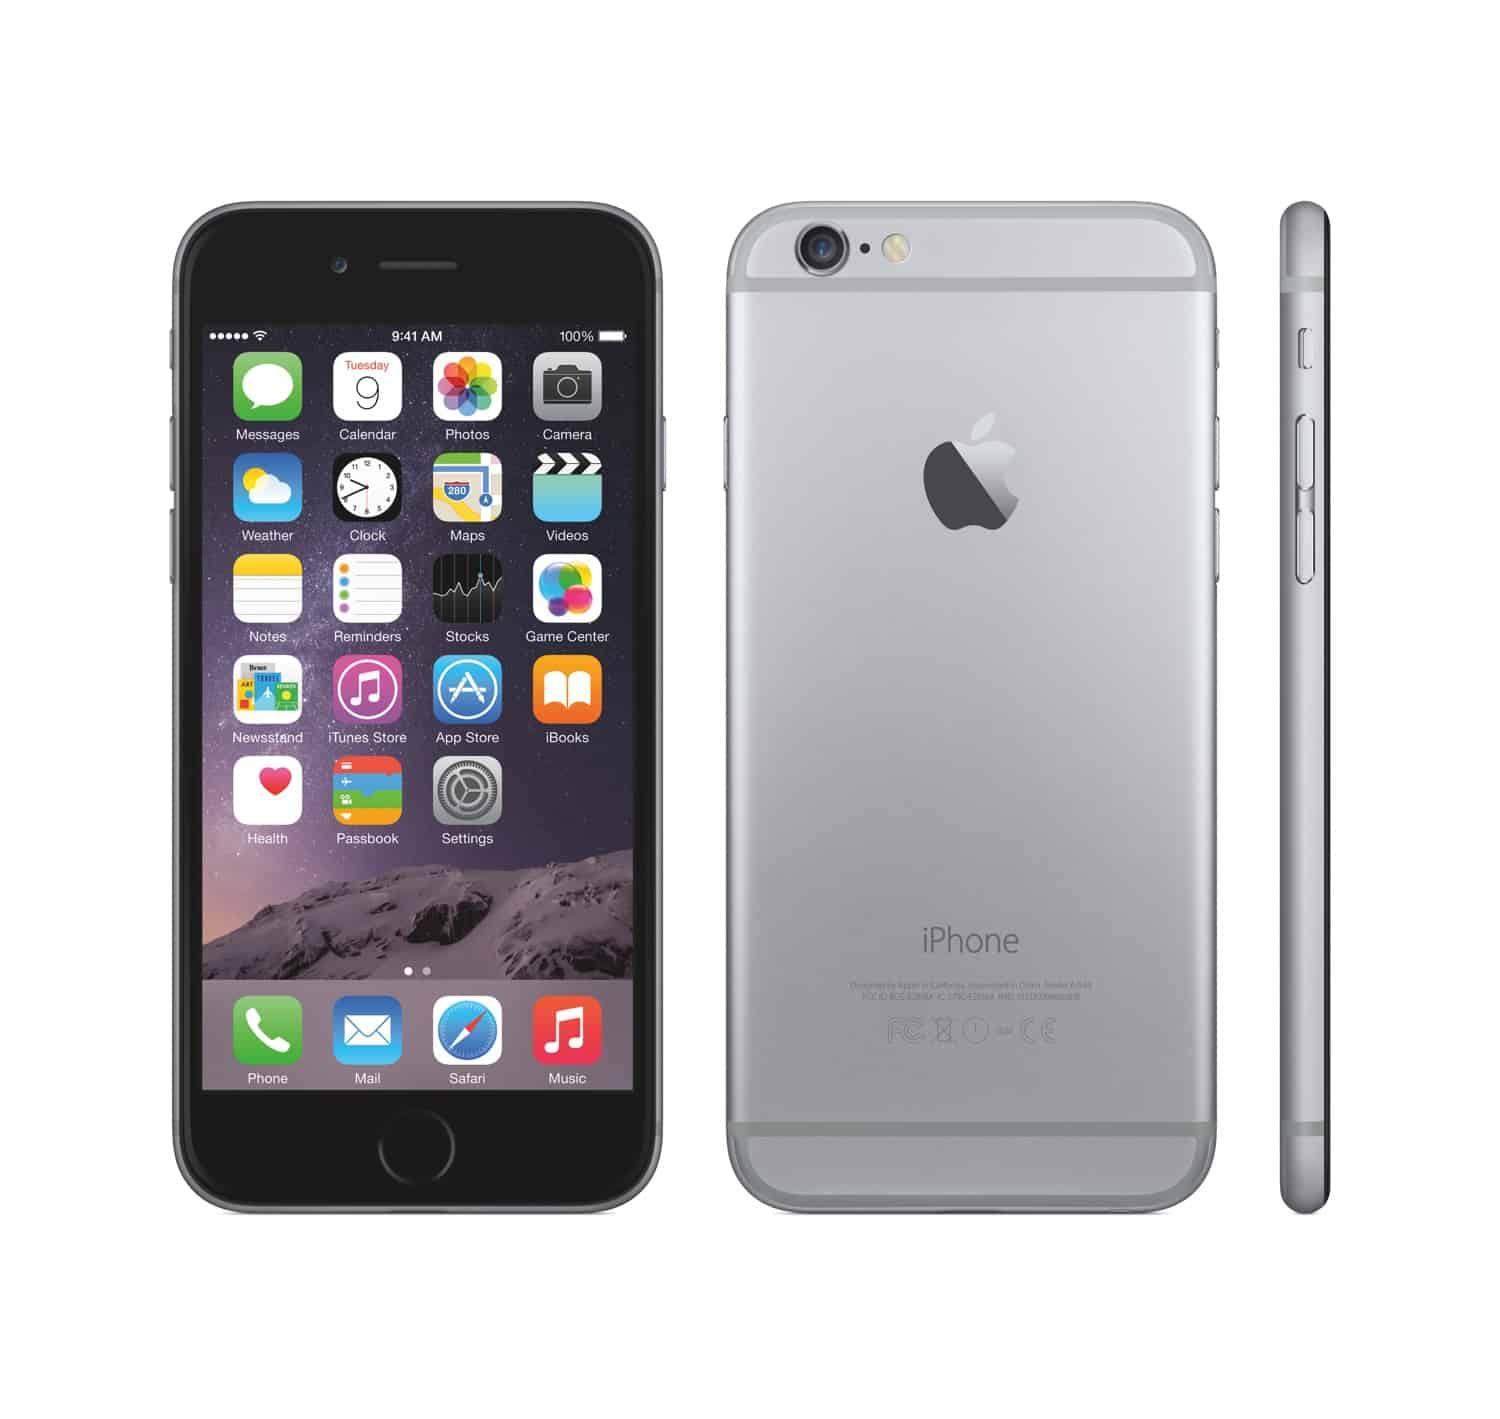 apple iphone 6 black. iphone 6 16gb black apple iphone recycell